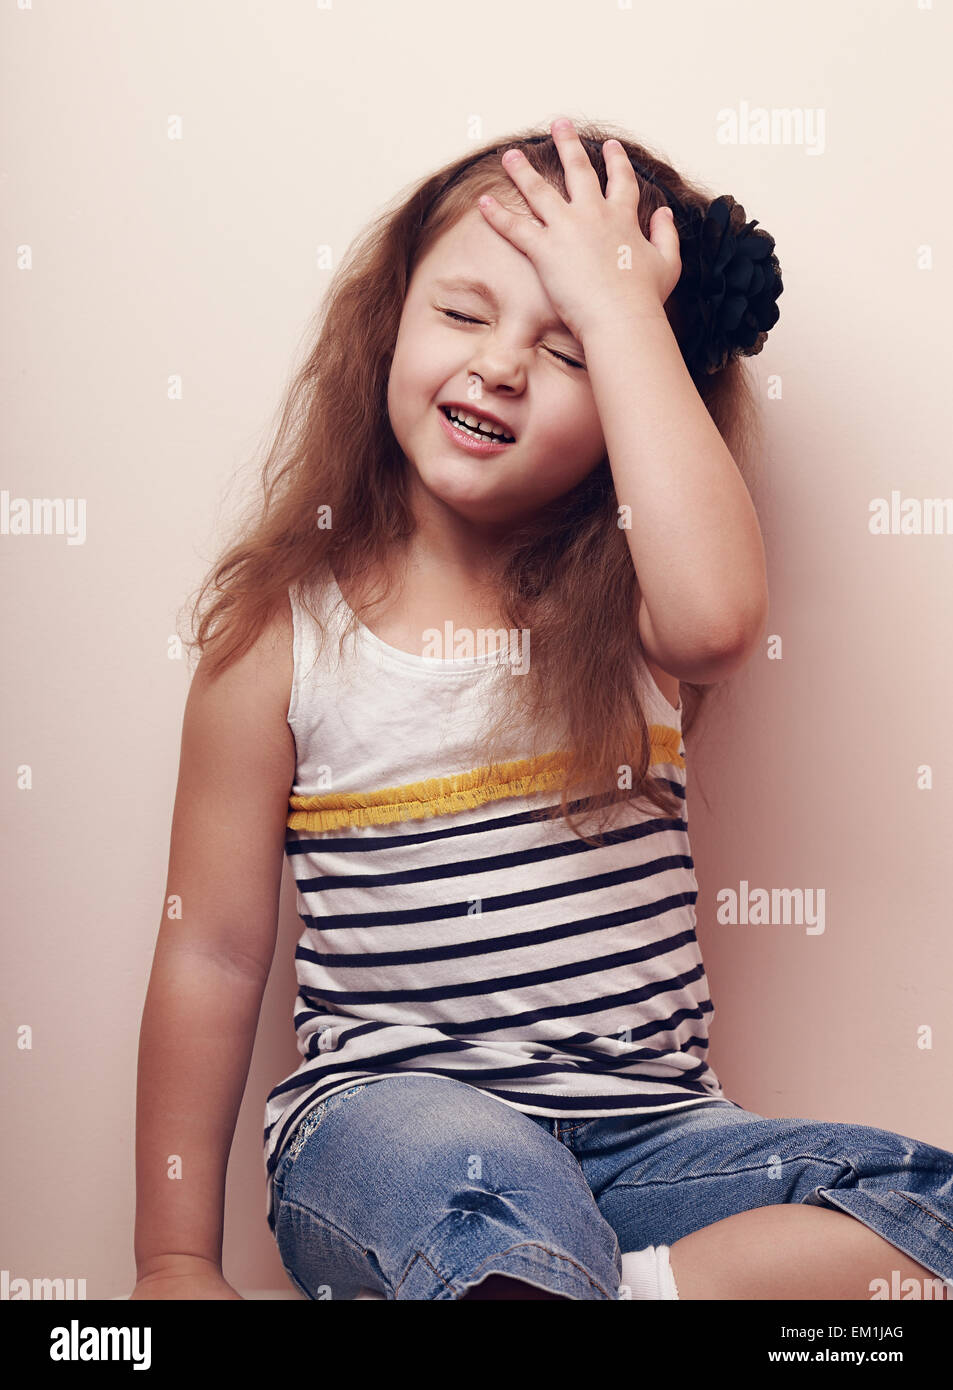 Disappointed kid girl thinking with hand on the head. Color portrait - Stock Image